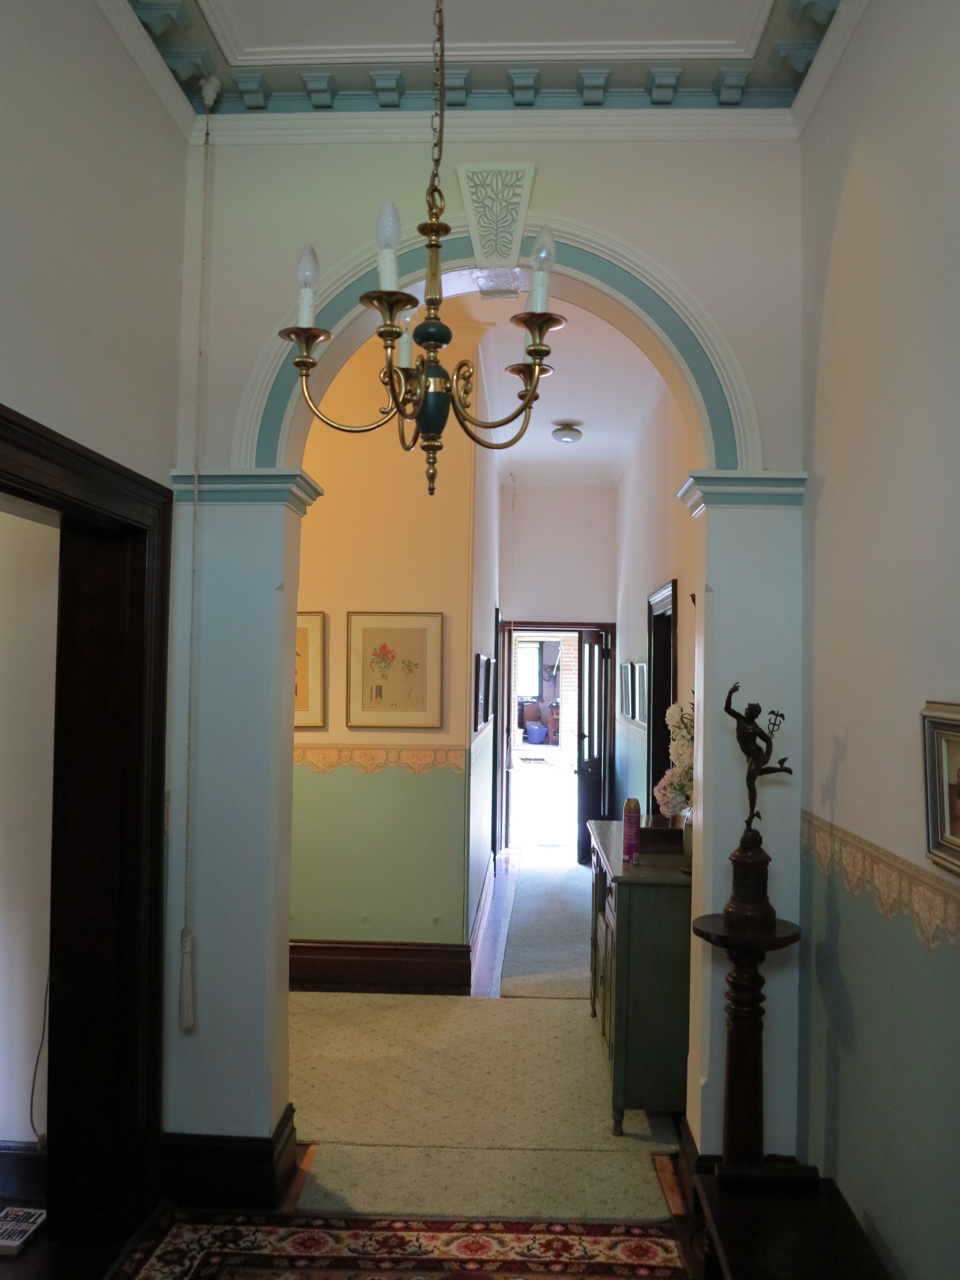 The foyer. Before.